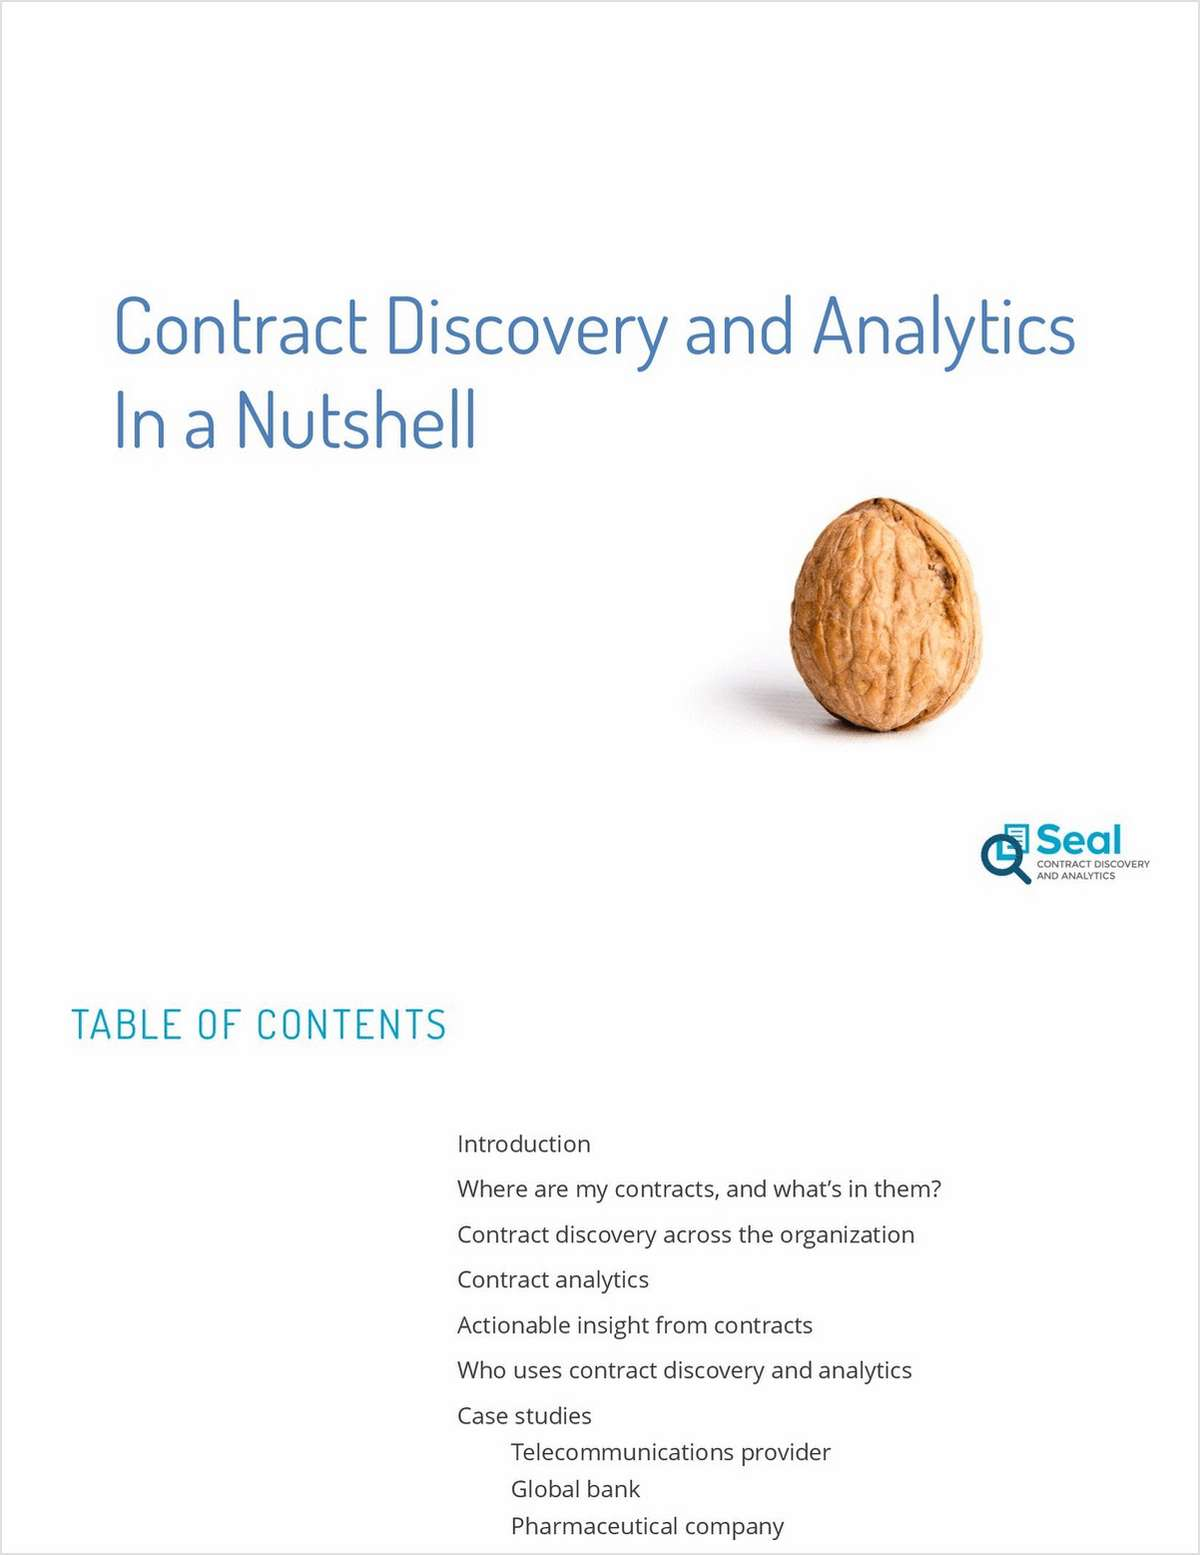 Contract Discovery & Analytics in a Nutshell